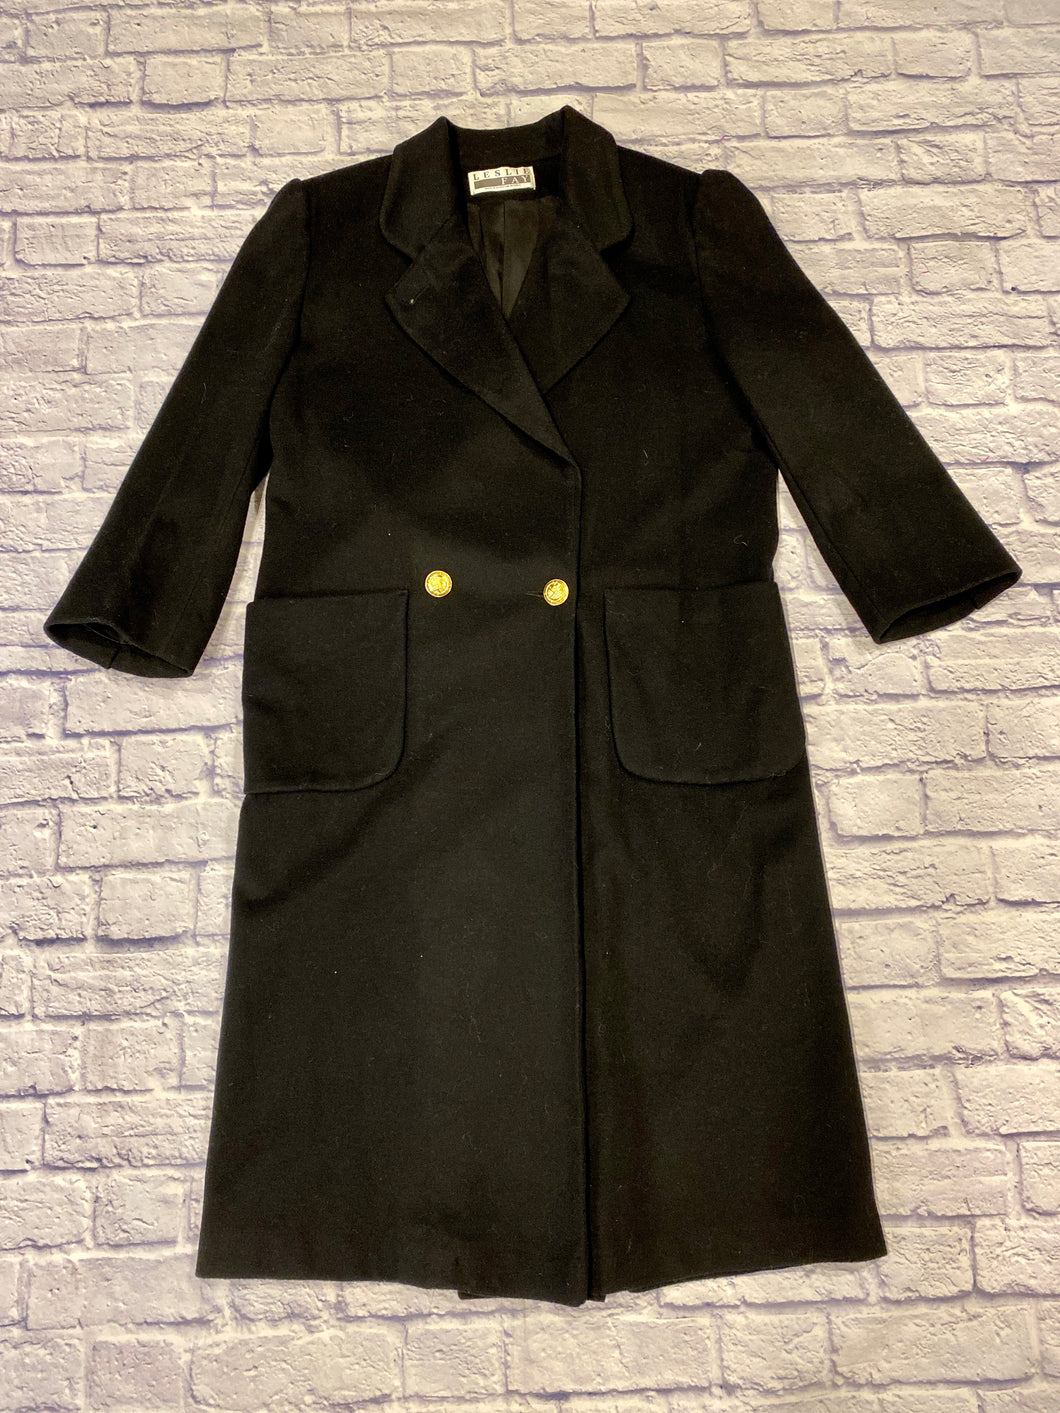 Leslie Fay vintage black wool trench coat with square padded shoulders and gold button accents.  Two front square pockets.  Oversized look.  Very on trend.